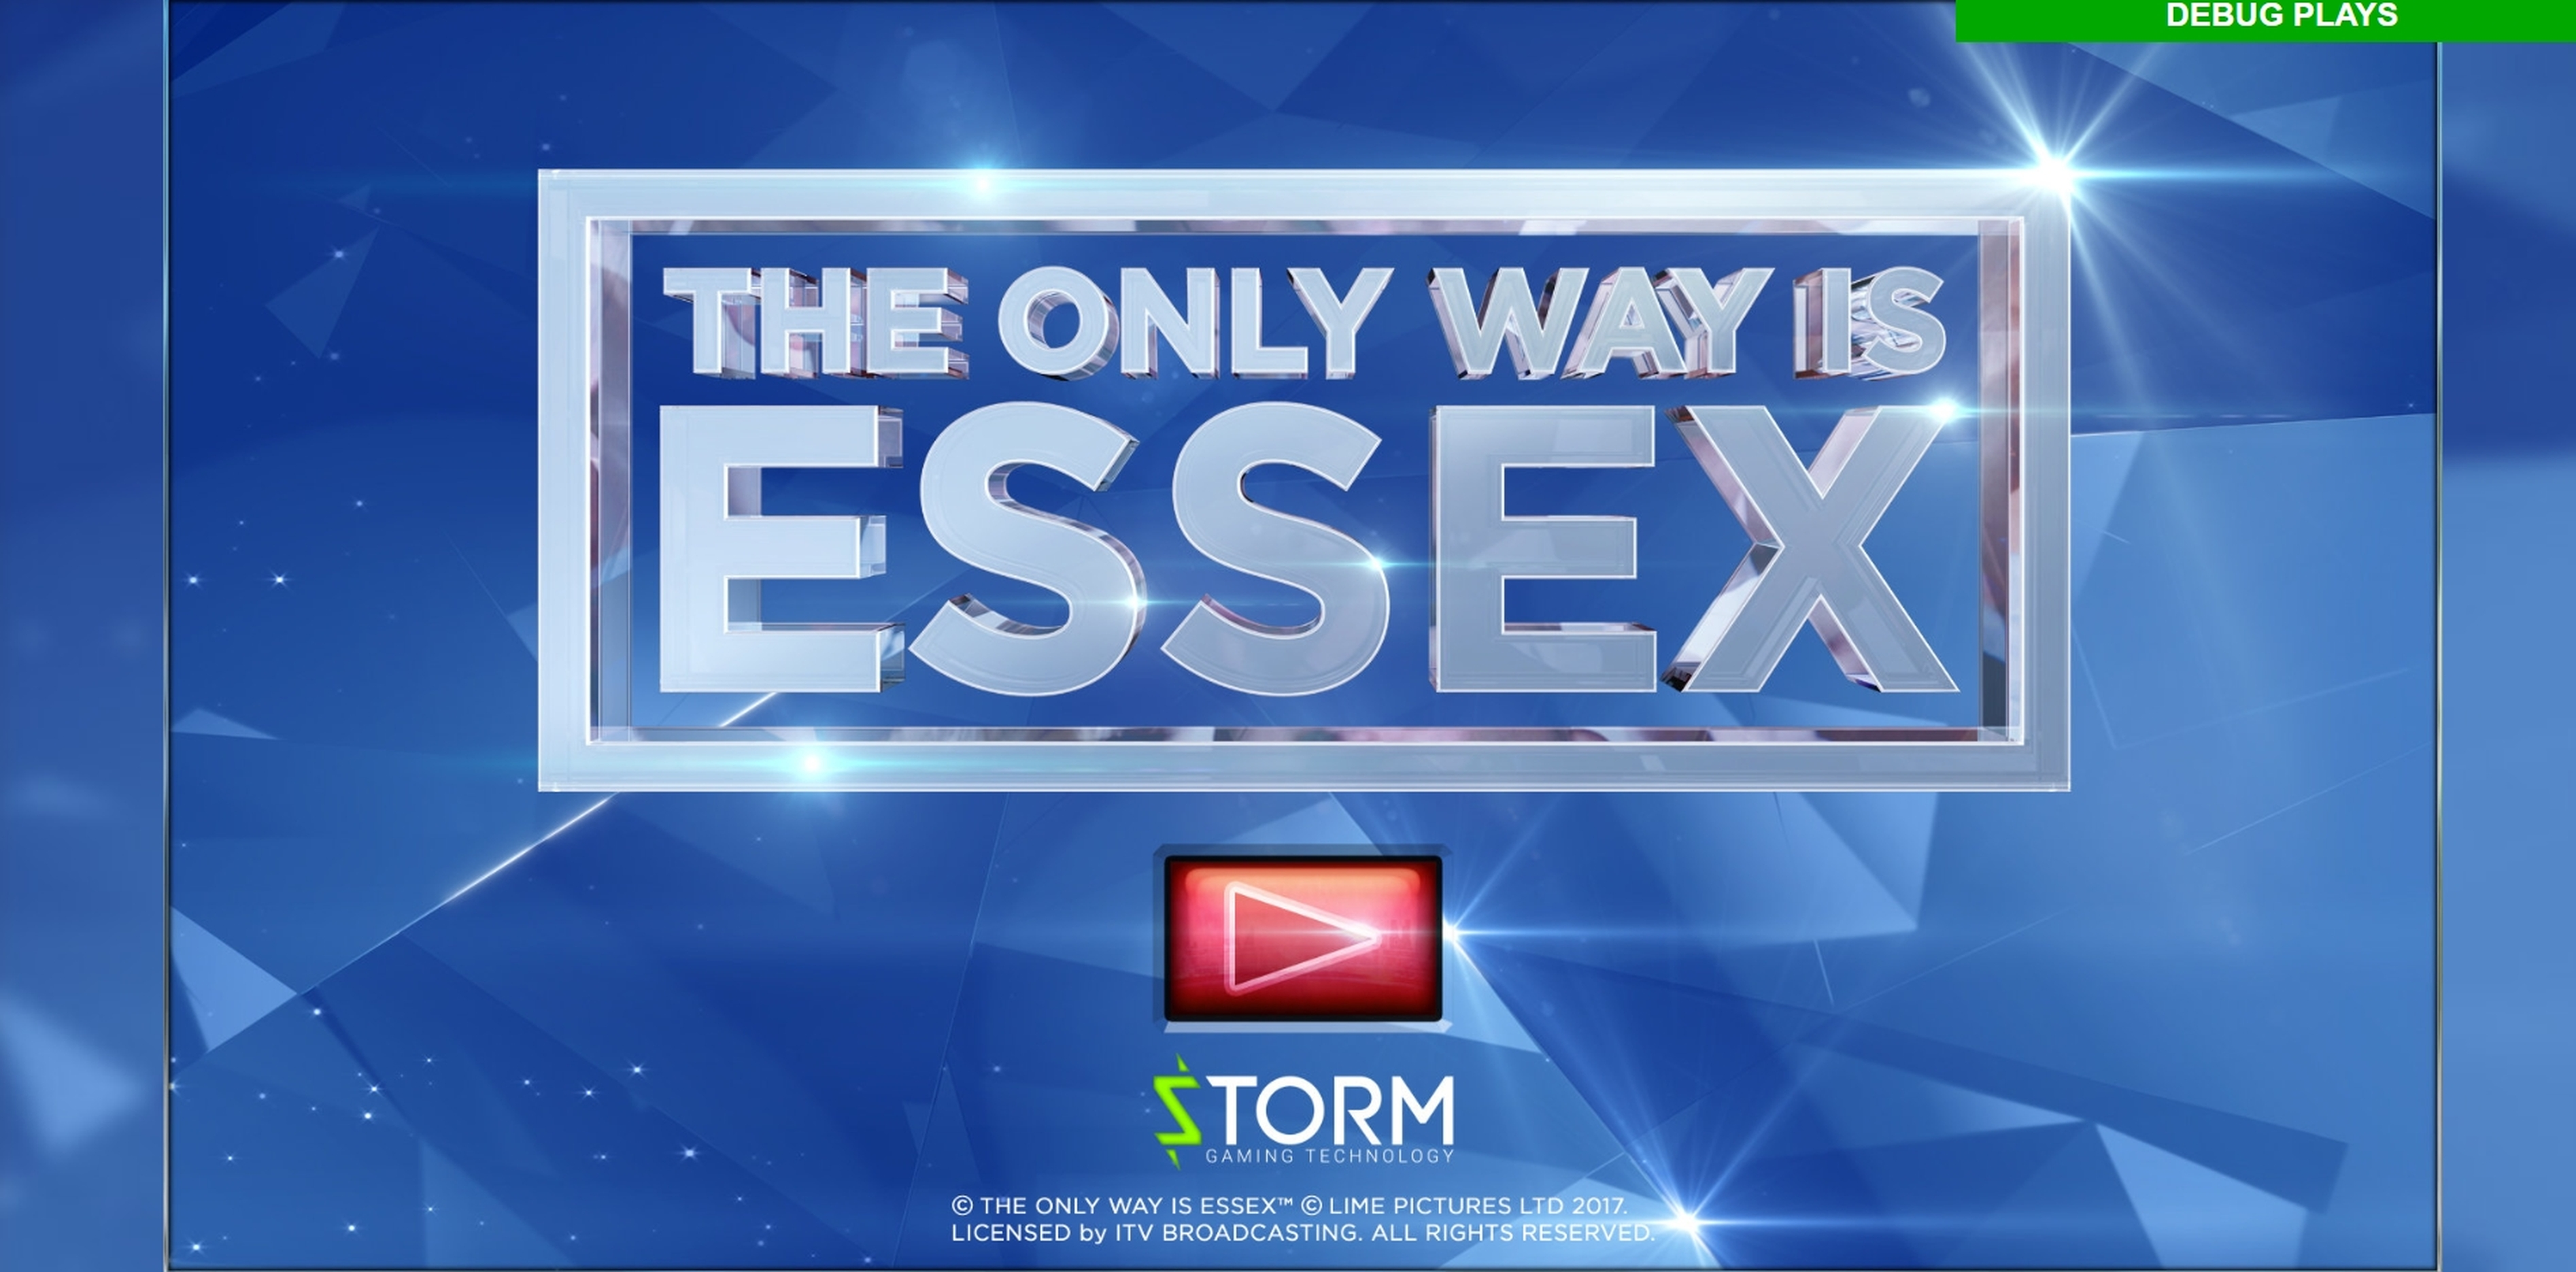 Play The Only Way is Essex Free Casino Slot Game by Storm Gaming